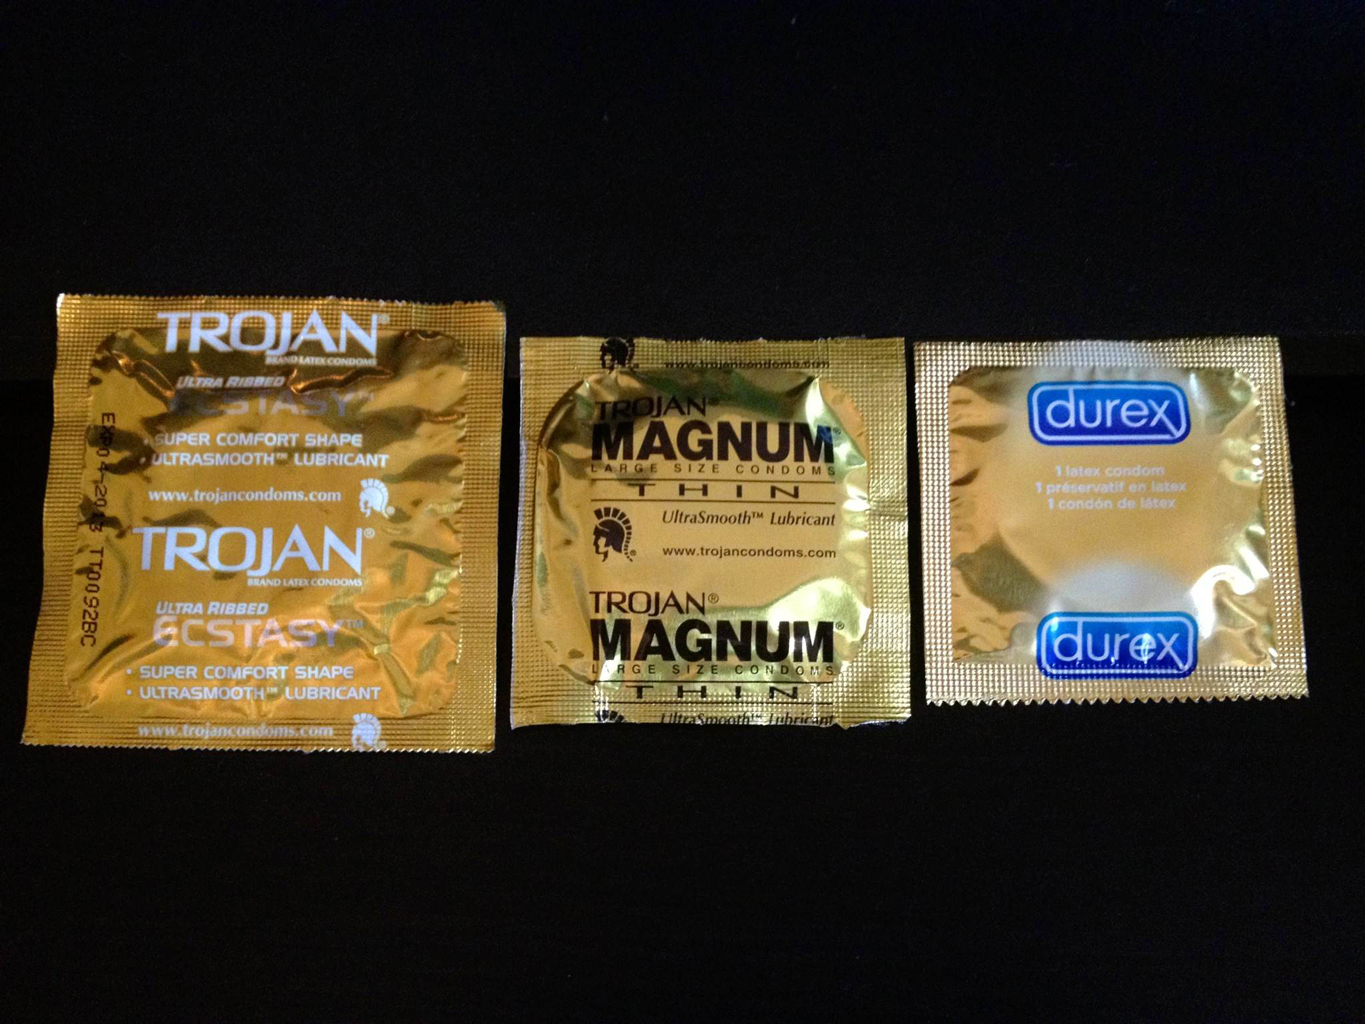 Condoms on spermicidal lubricants